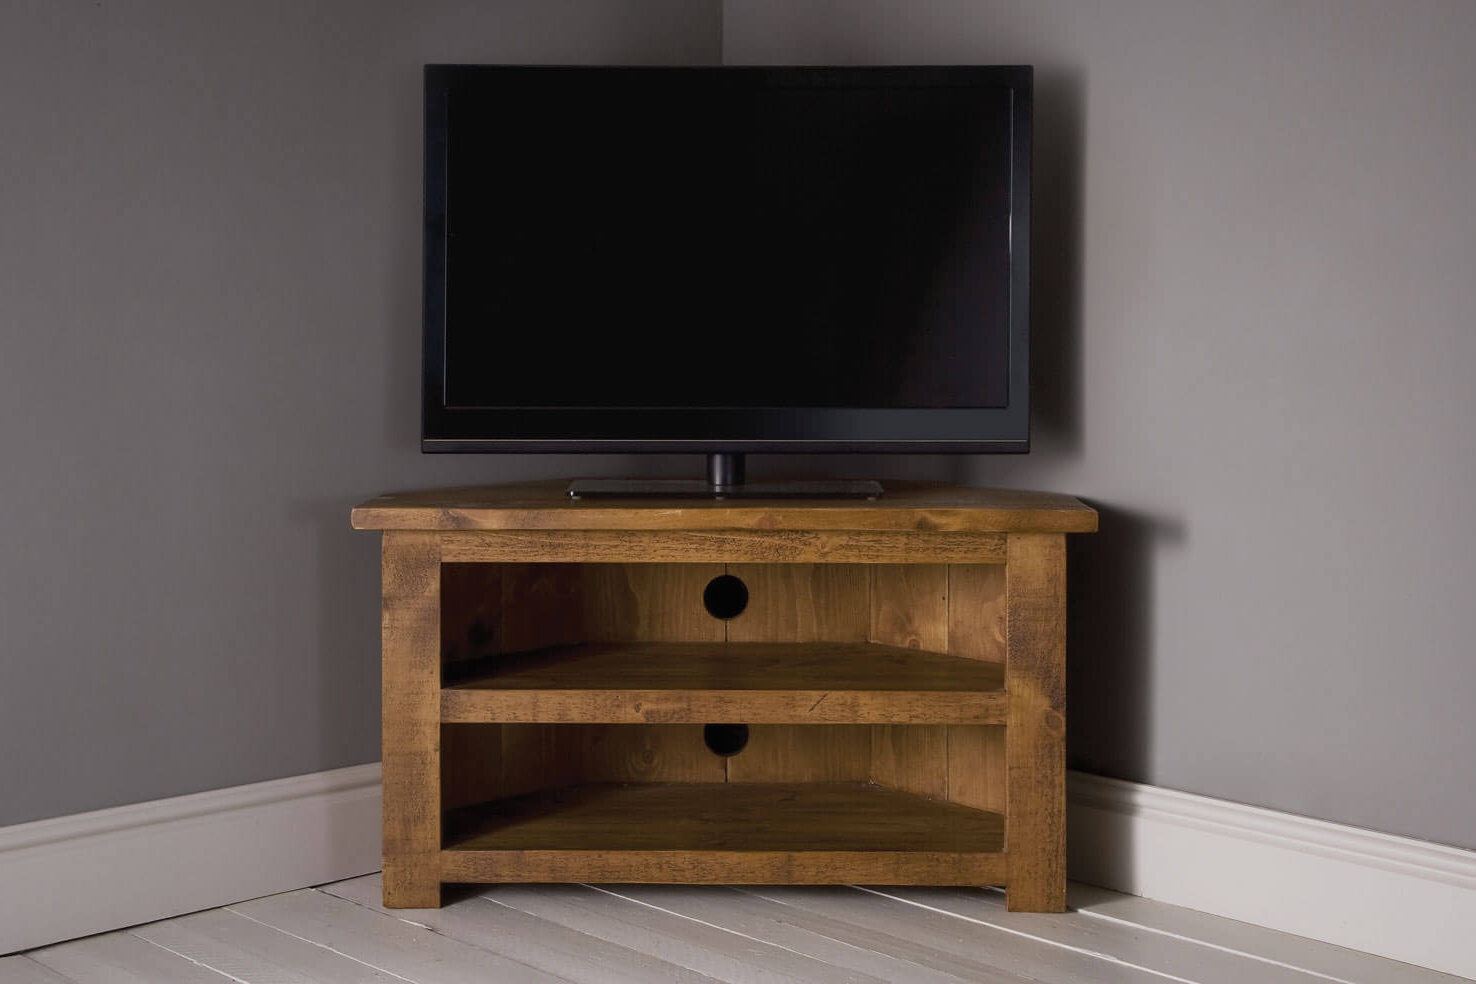 Plank Corner Tv Unit With Shelfindigo Furniture Throughout Newest Wooden Corner Tv Units (View 13 of 20)